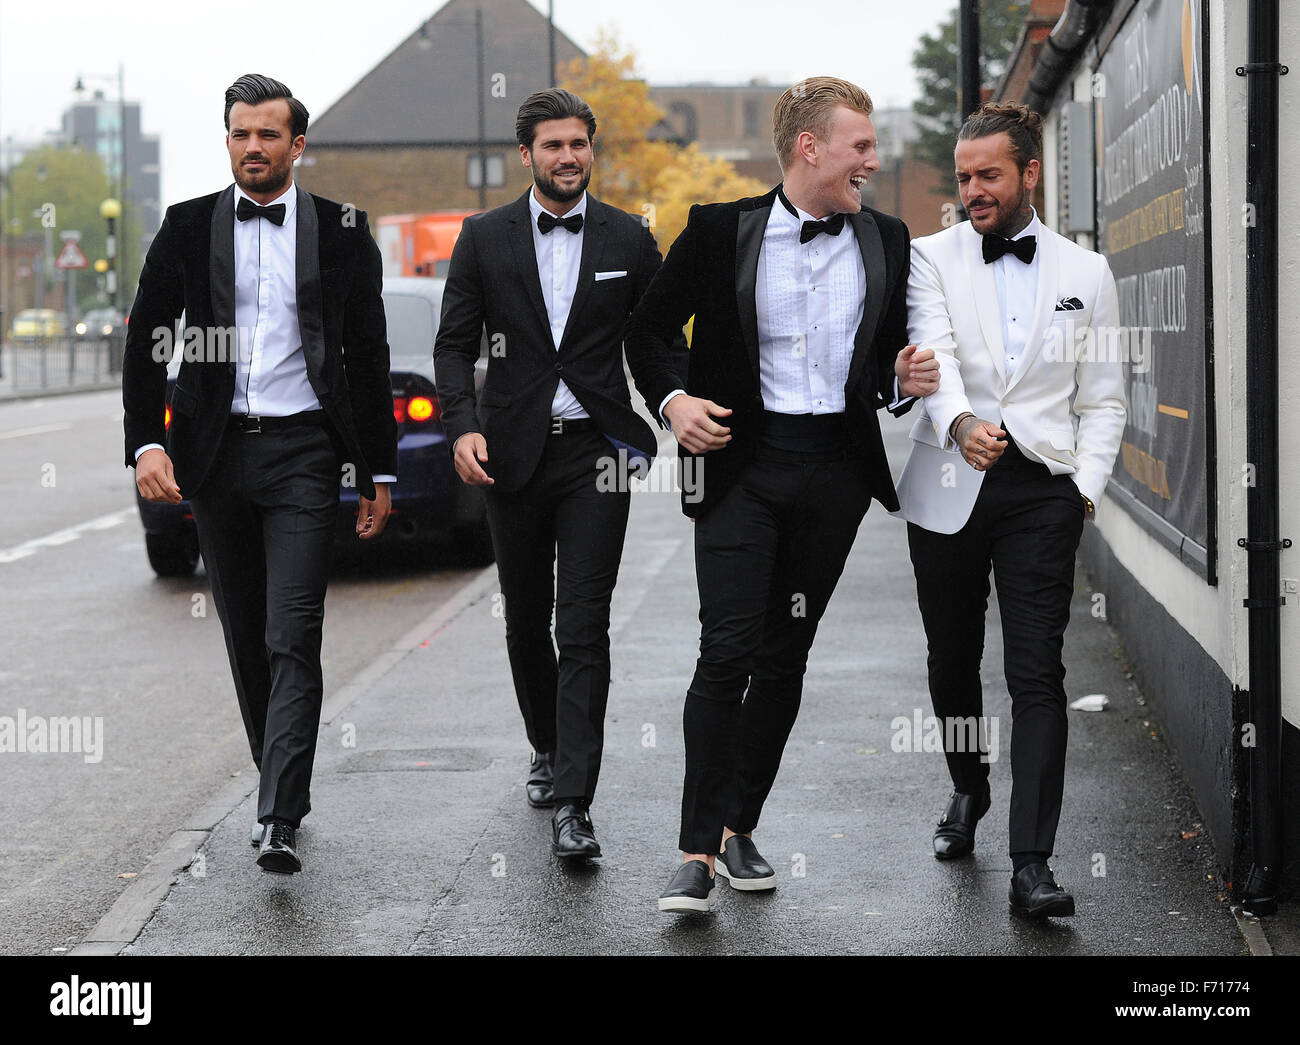 the-towie-cast-film-michael-hassini-james-bond-21st-birthday-party-F71774 Towie Cast Film Their Royal Wedding Theme Finale They Celebrated Nanny Pats Birthday At Addington Palace In Croydon She Was The Queen And The Cast Had